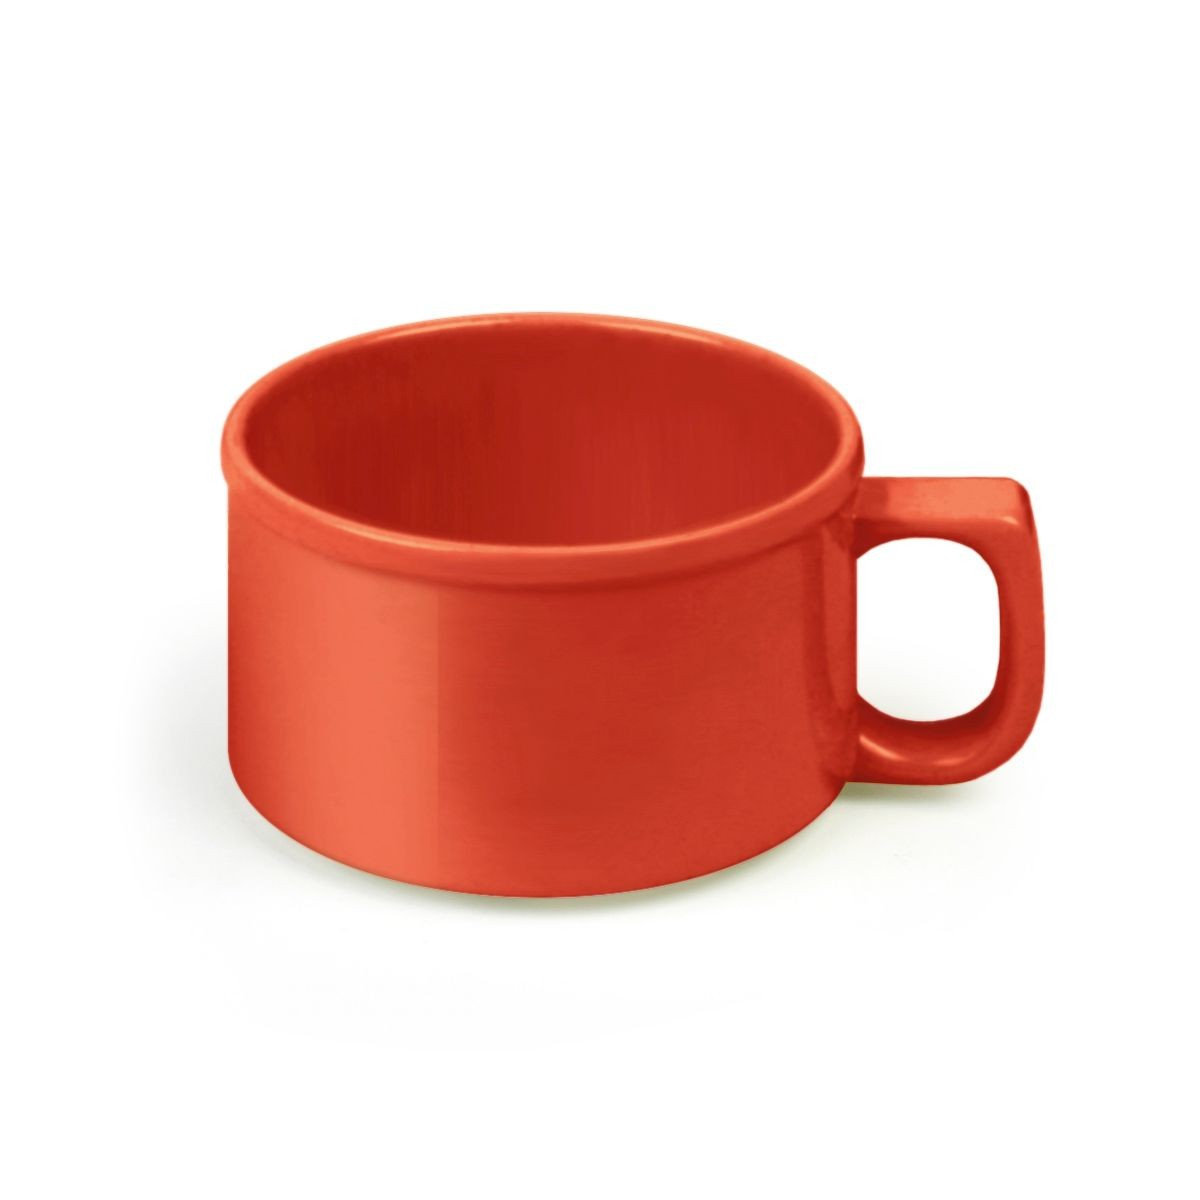 Thunder Group CR9016PR Pure Red Melamine Soup Mug 10 oz. - 1 doz